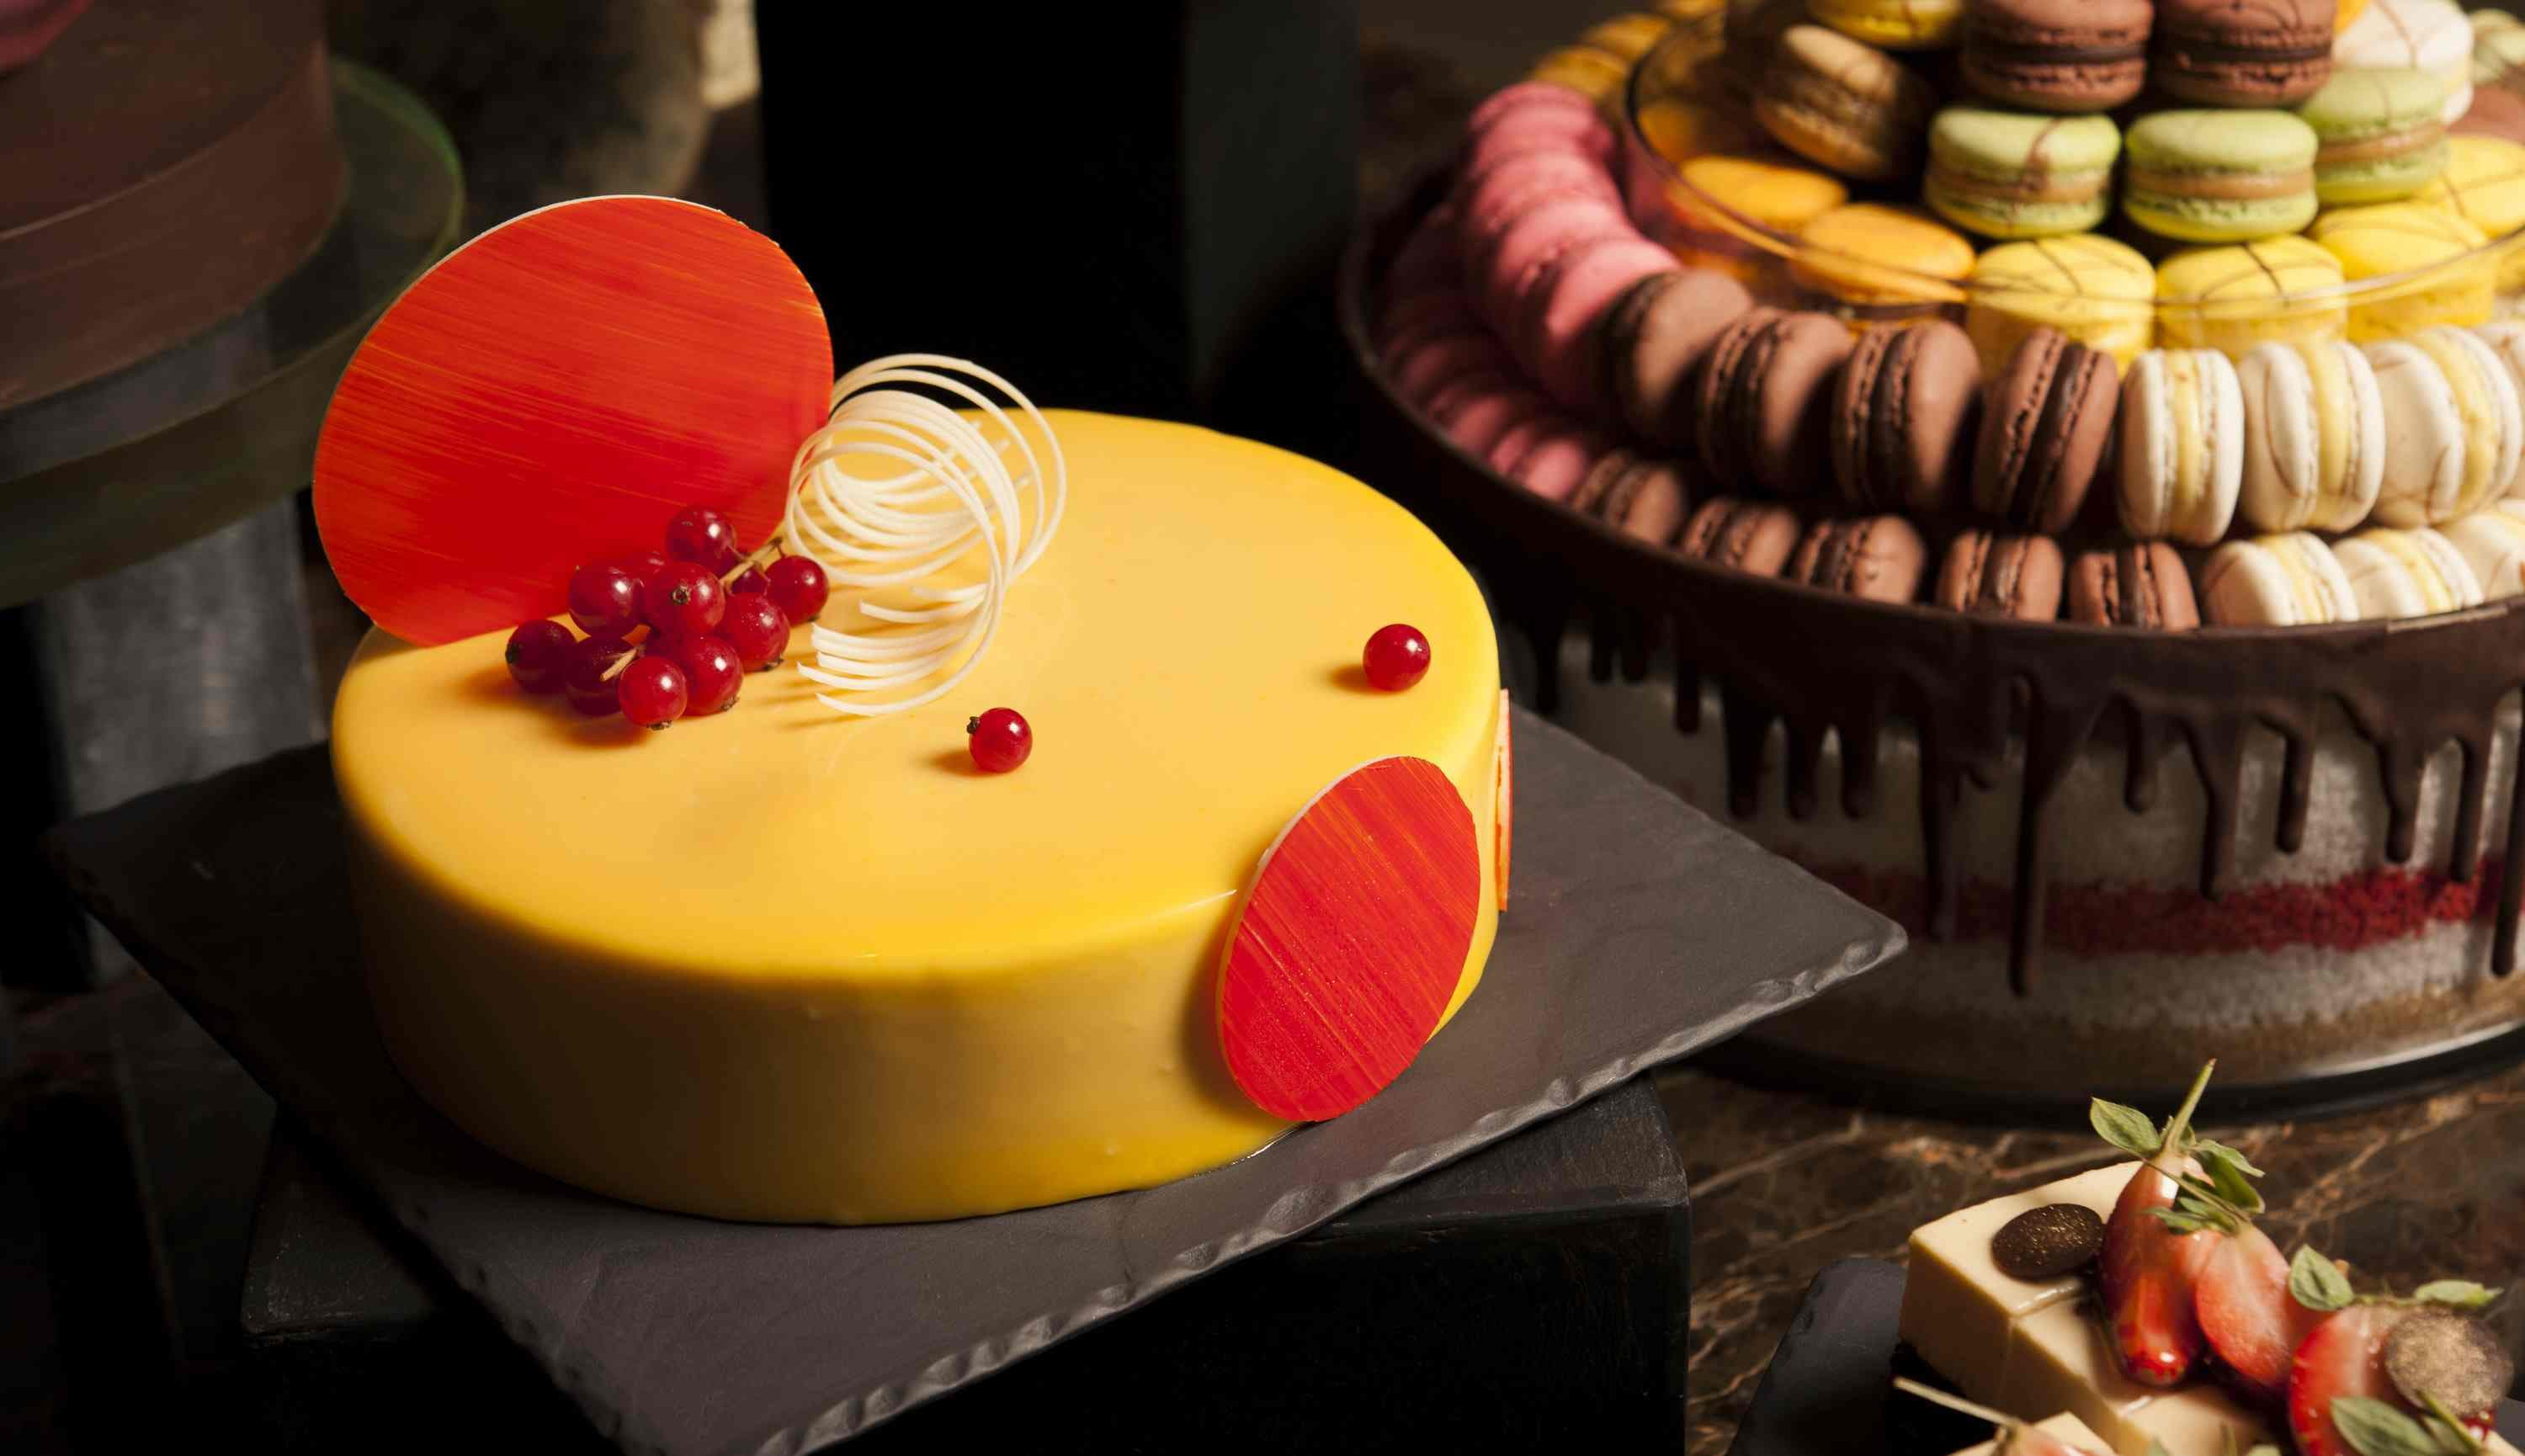 Club55 – The Cheese and Chocolate Buffet, Passion Fruit White Chocolate Mousse Cake